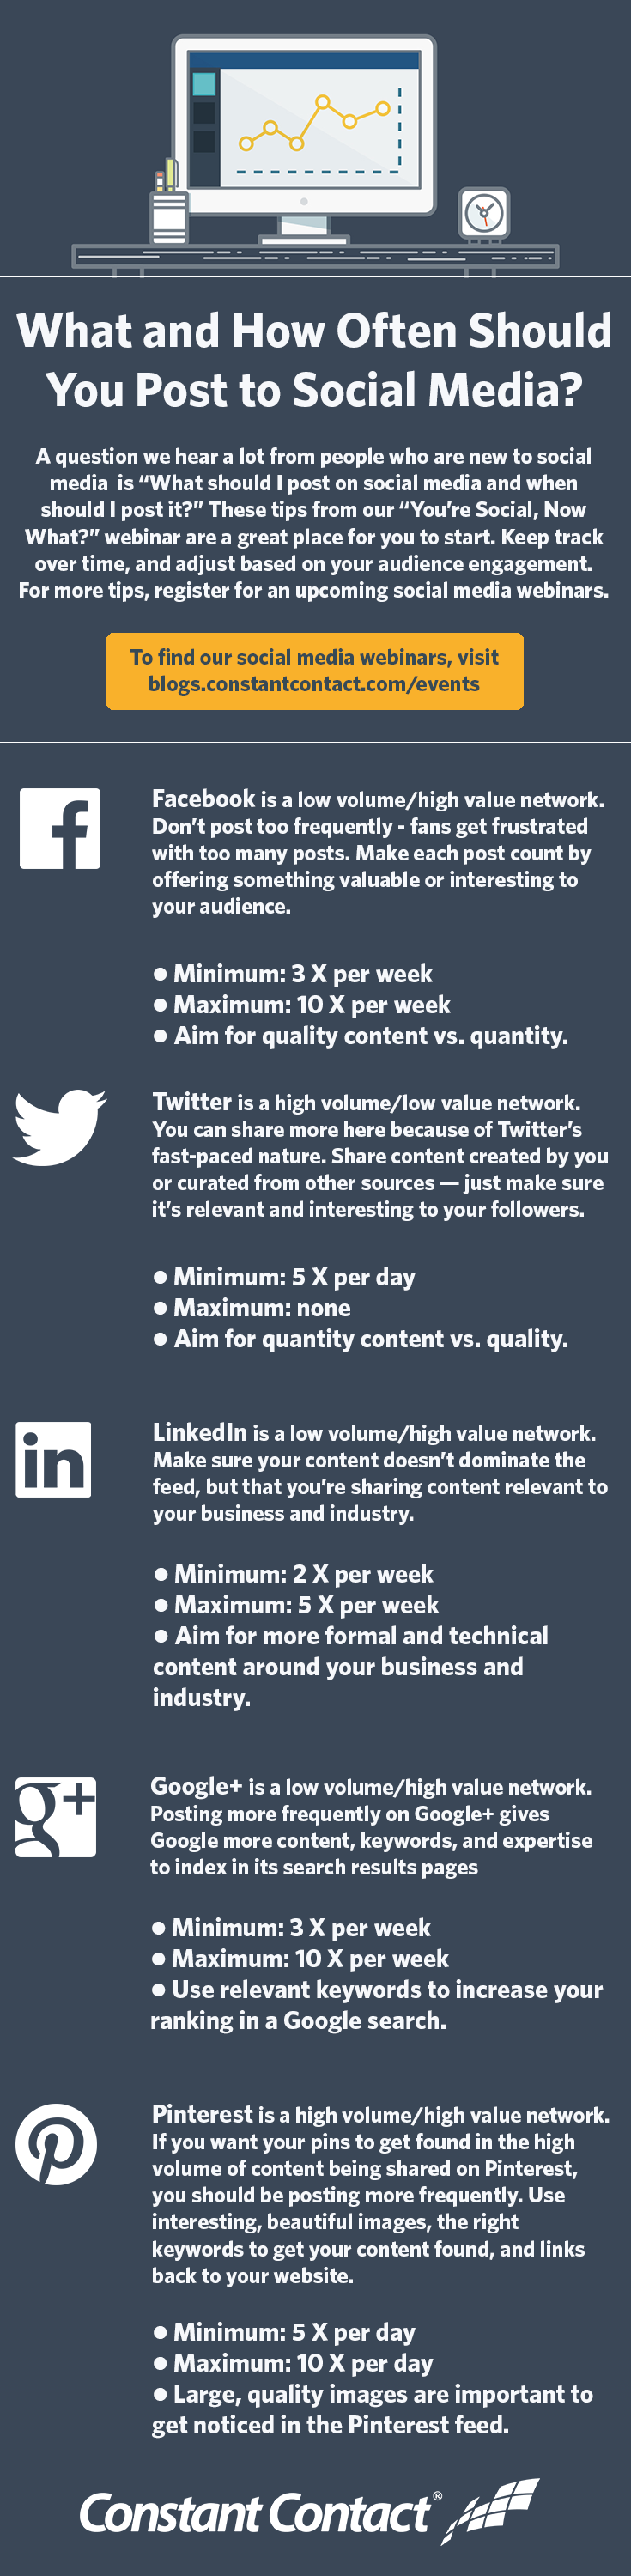 Social-Media-Posting-Frequency-Infographic